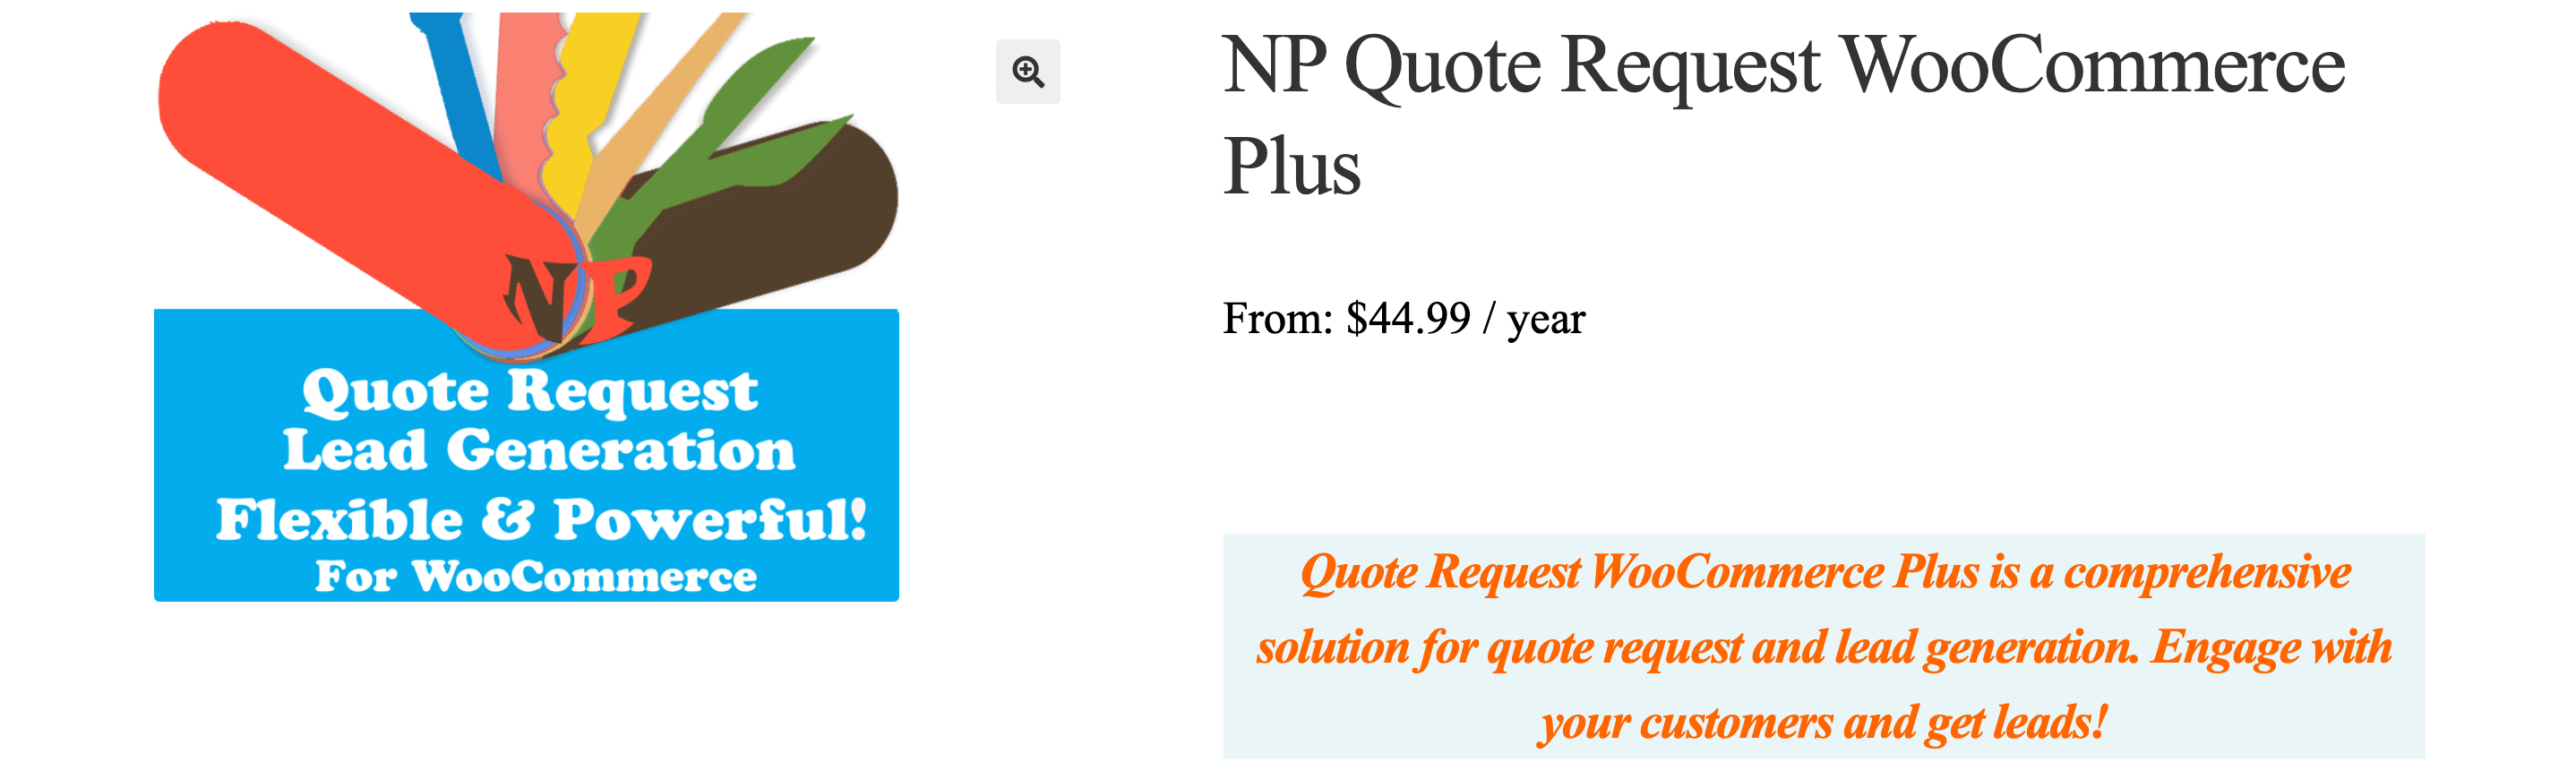 NP Quote Request WooCommerce Plus